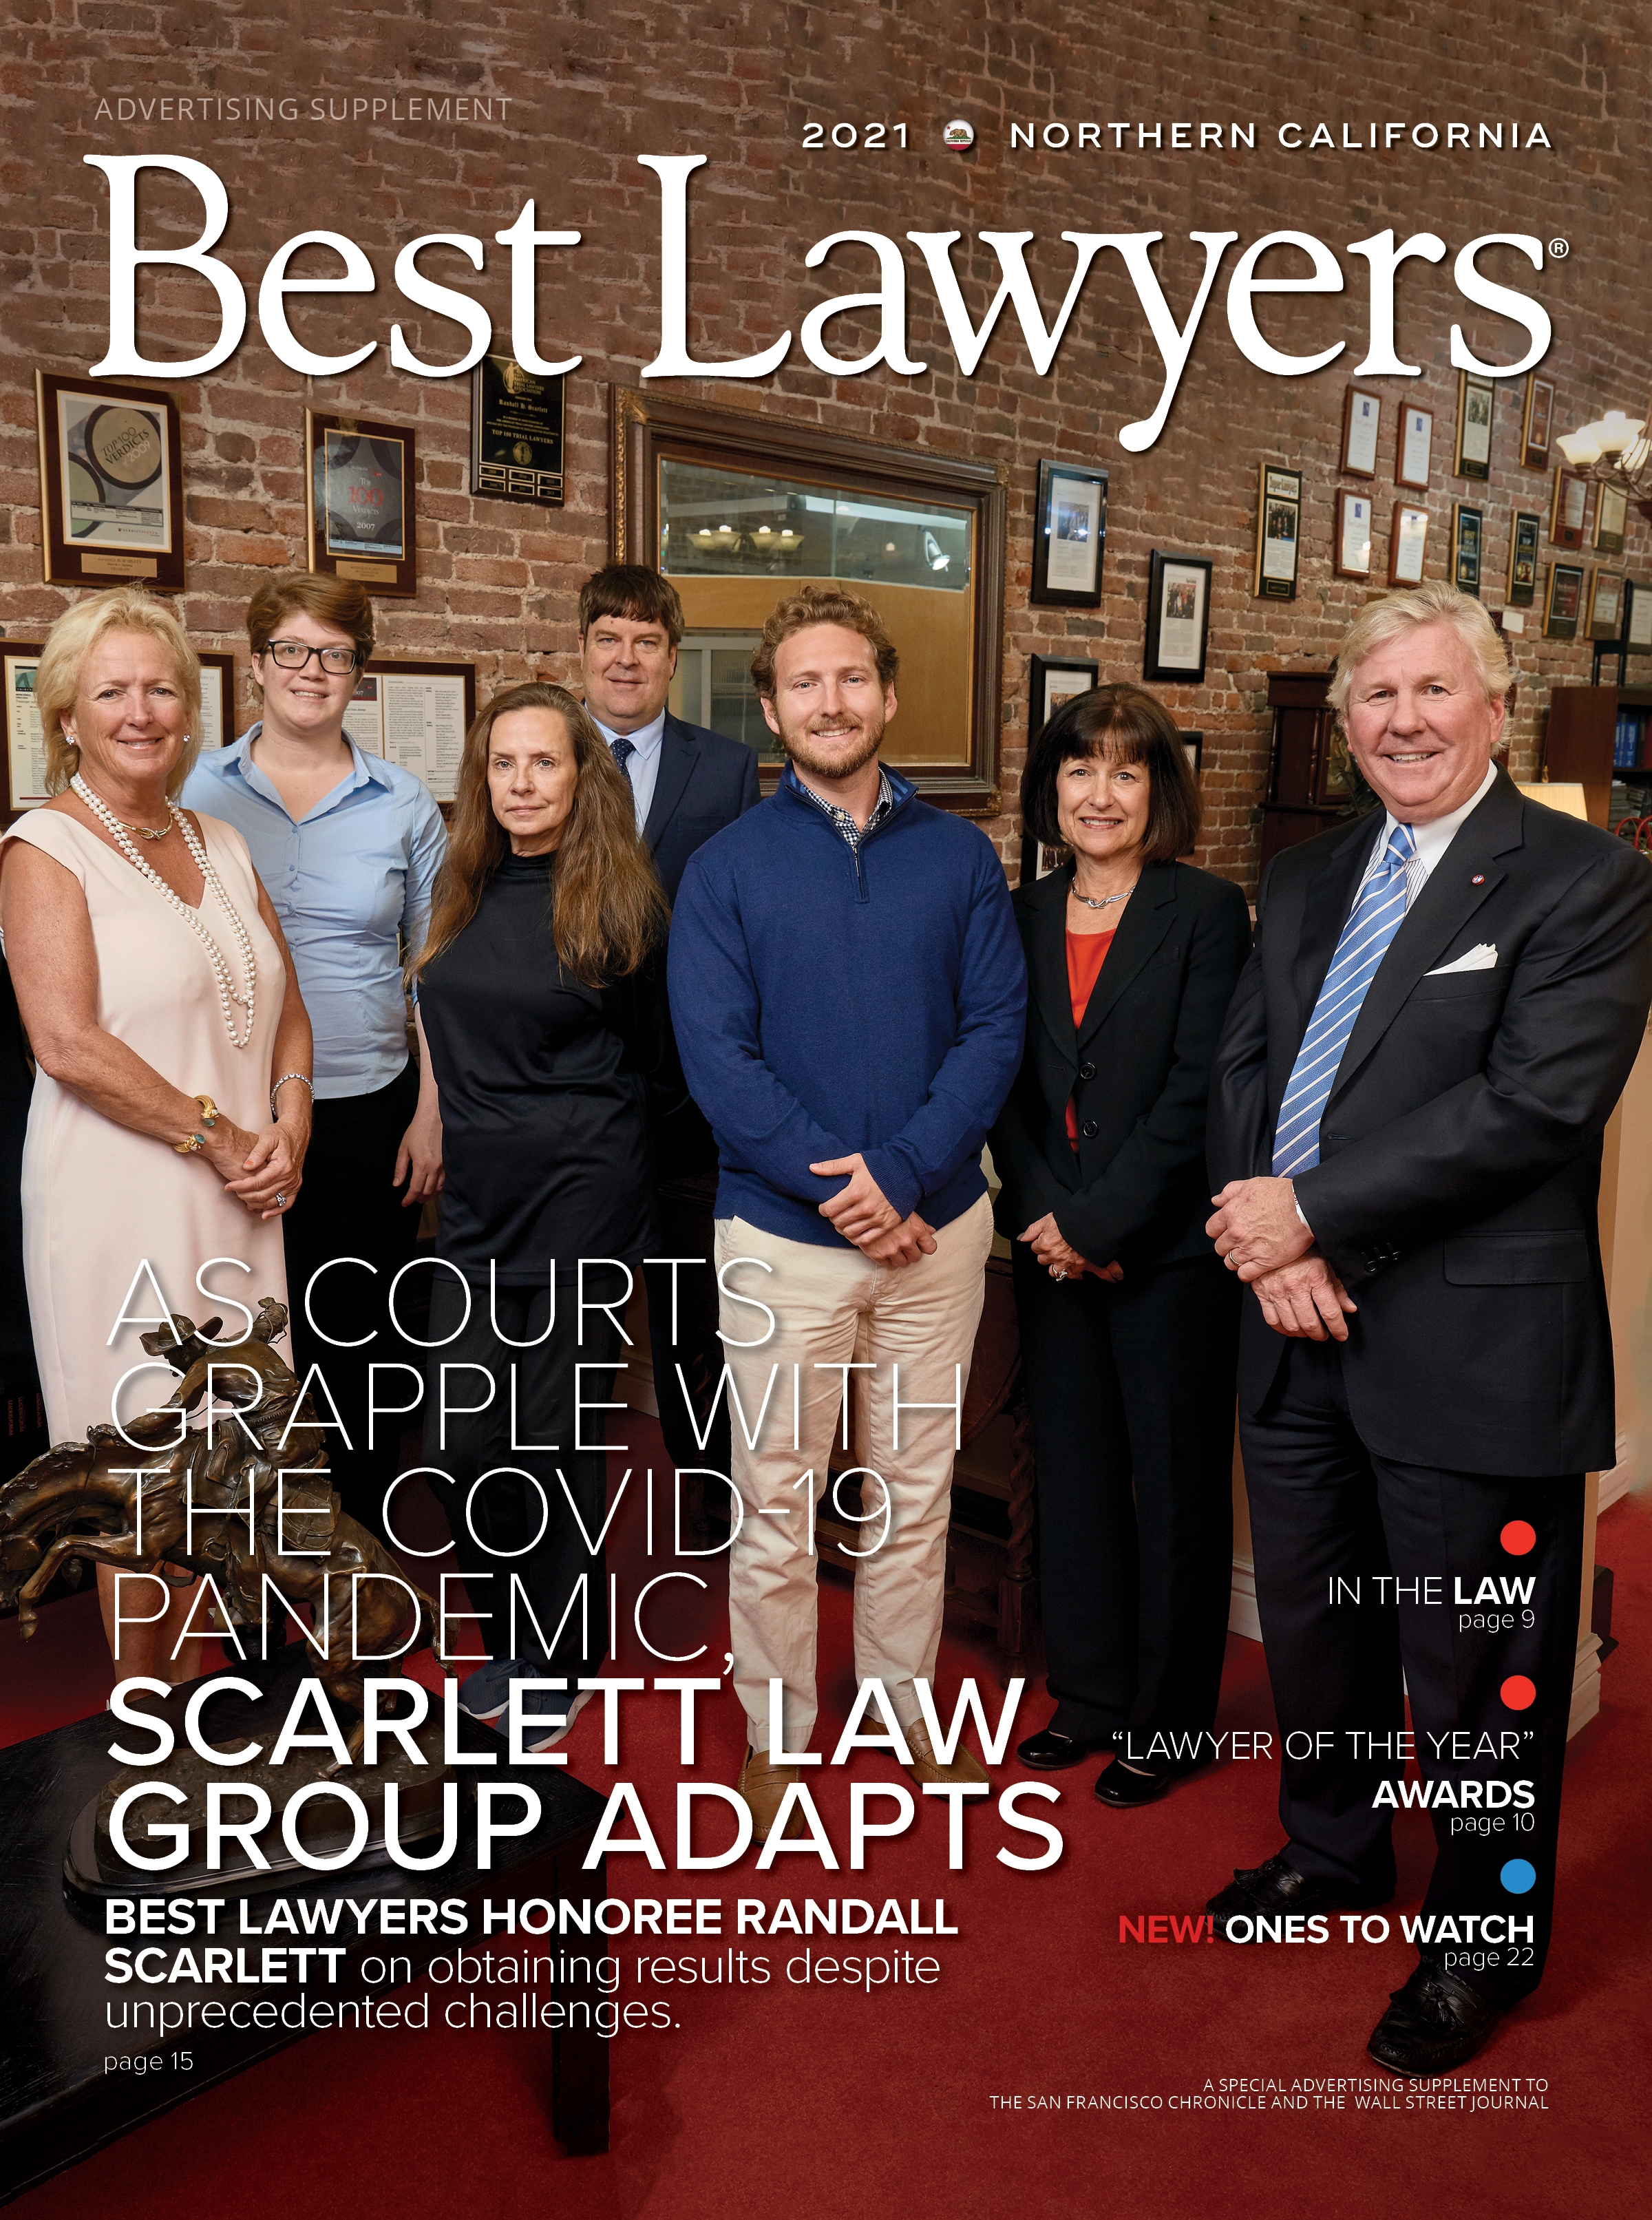 2021 Northern California's Best Lawyers cover